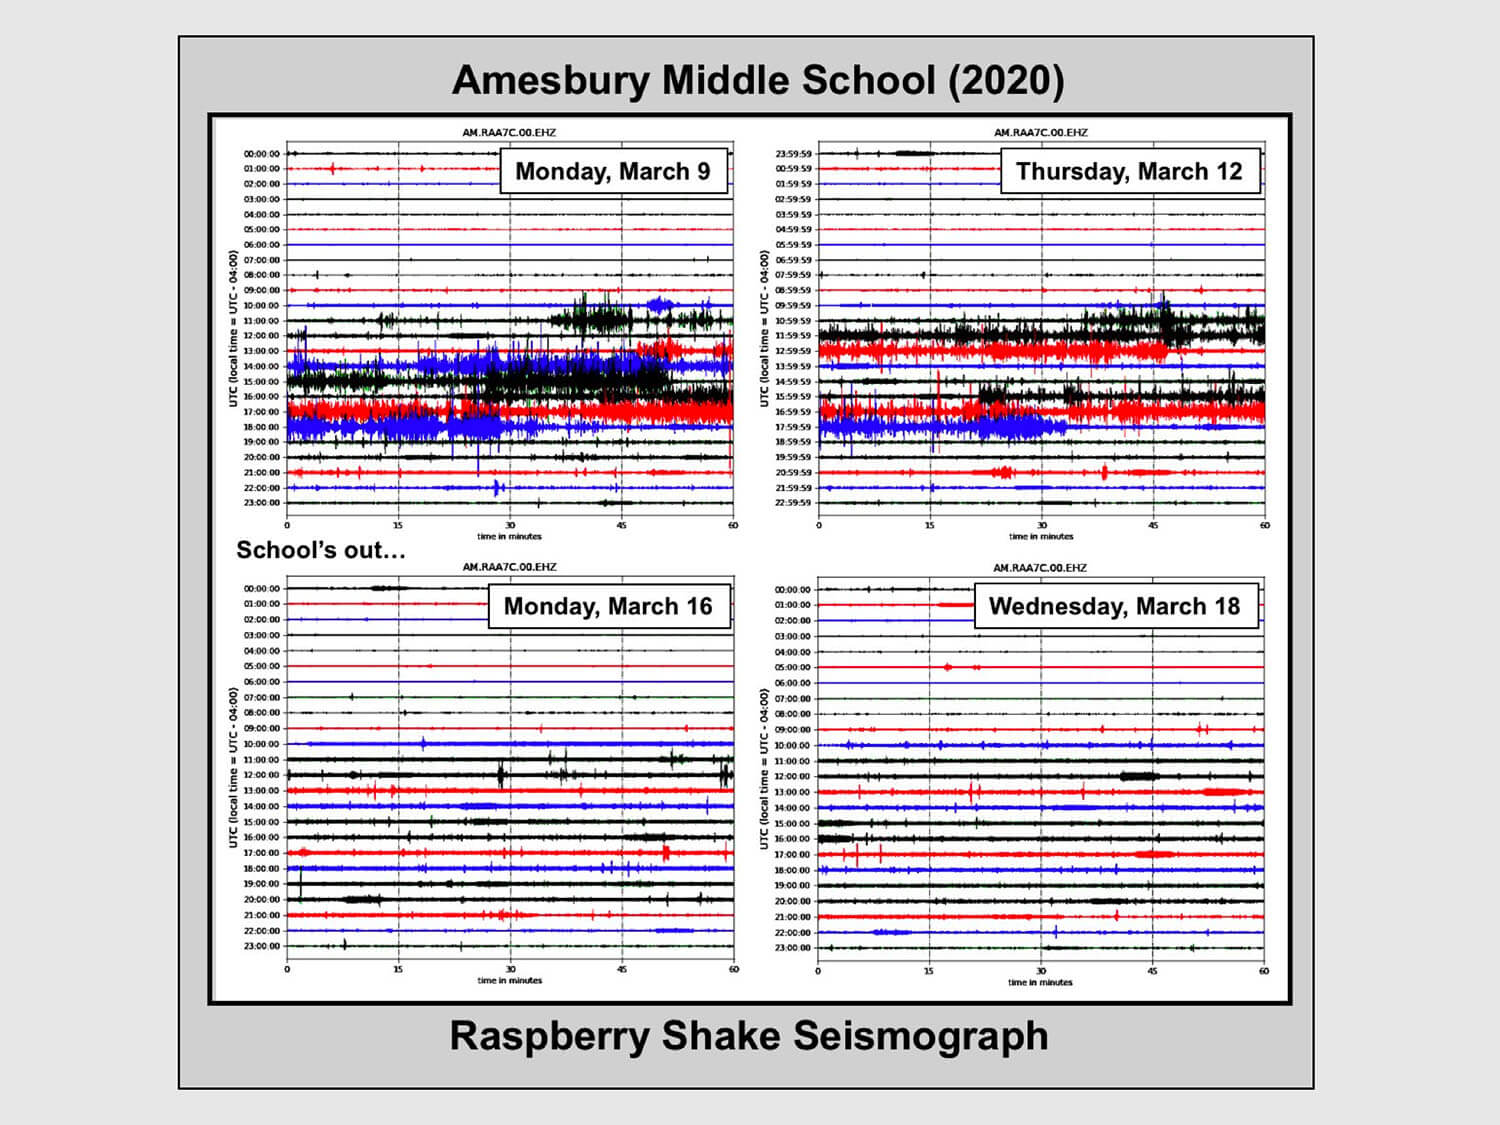 Seismic recordings before and after COVID-19 lockdown